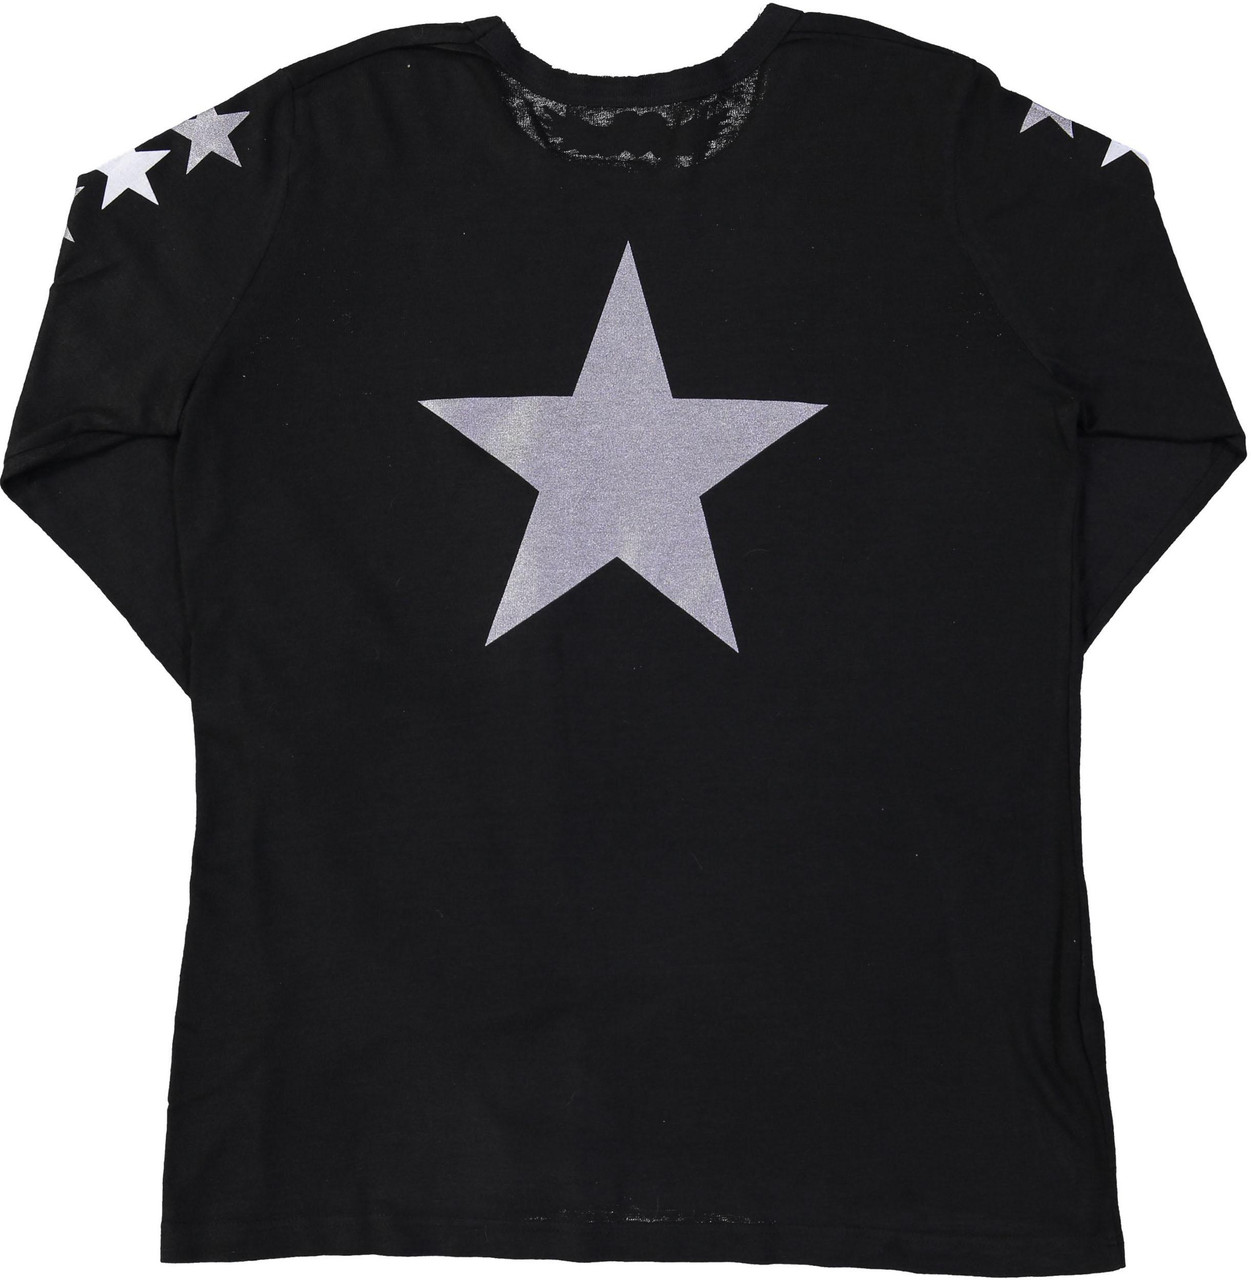 So Nikki Girls StarBack Long Sleeve T-shirt - 1067K-P714B-SLVS/SILVER-STAR-BACK